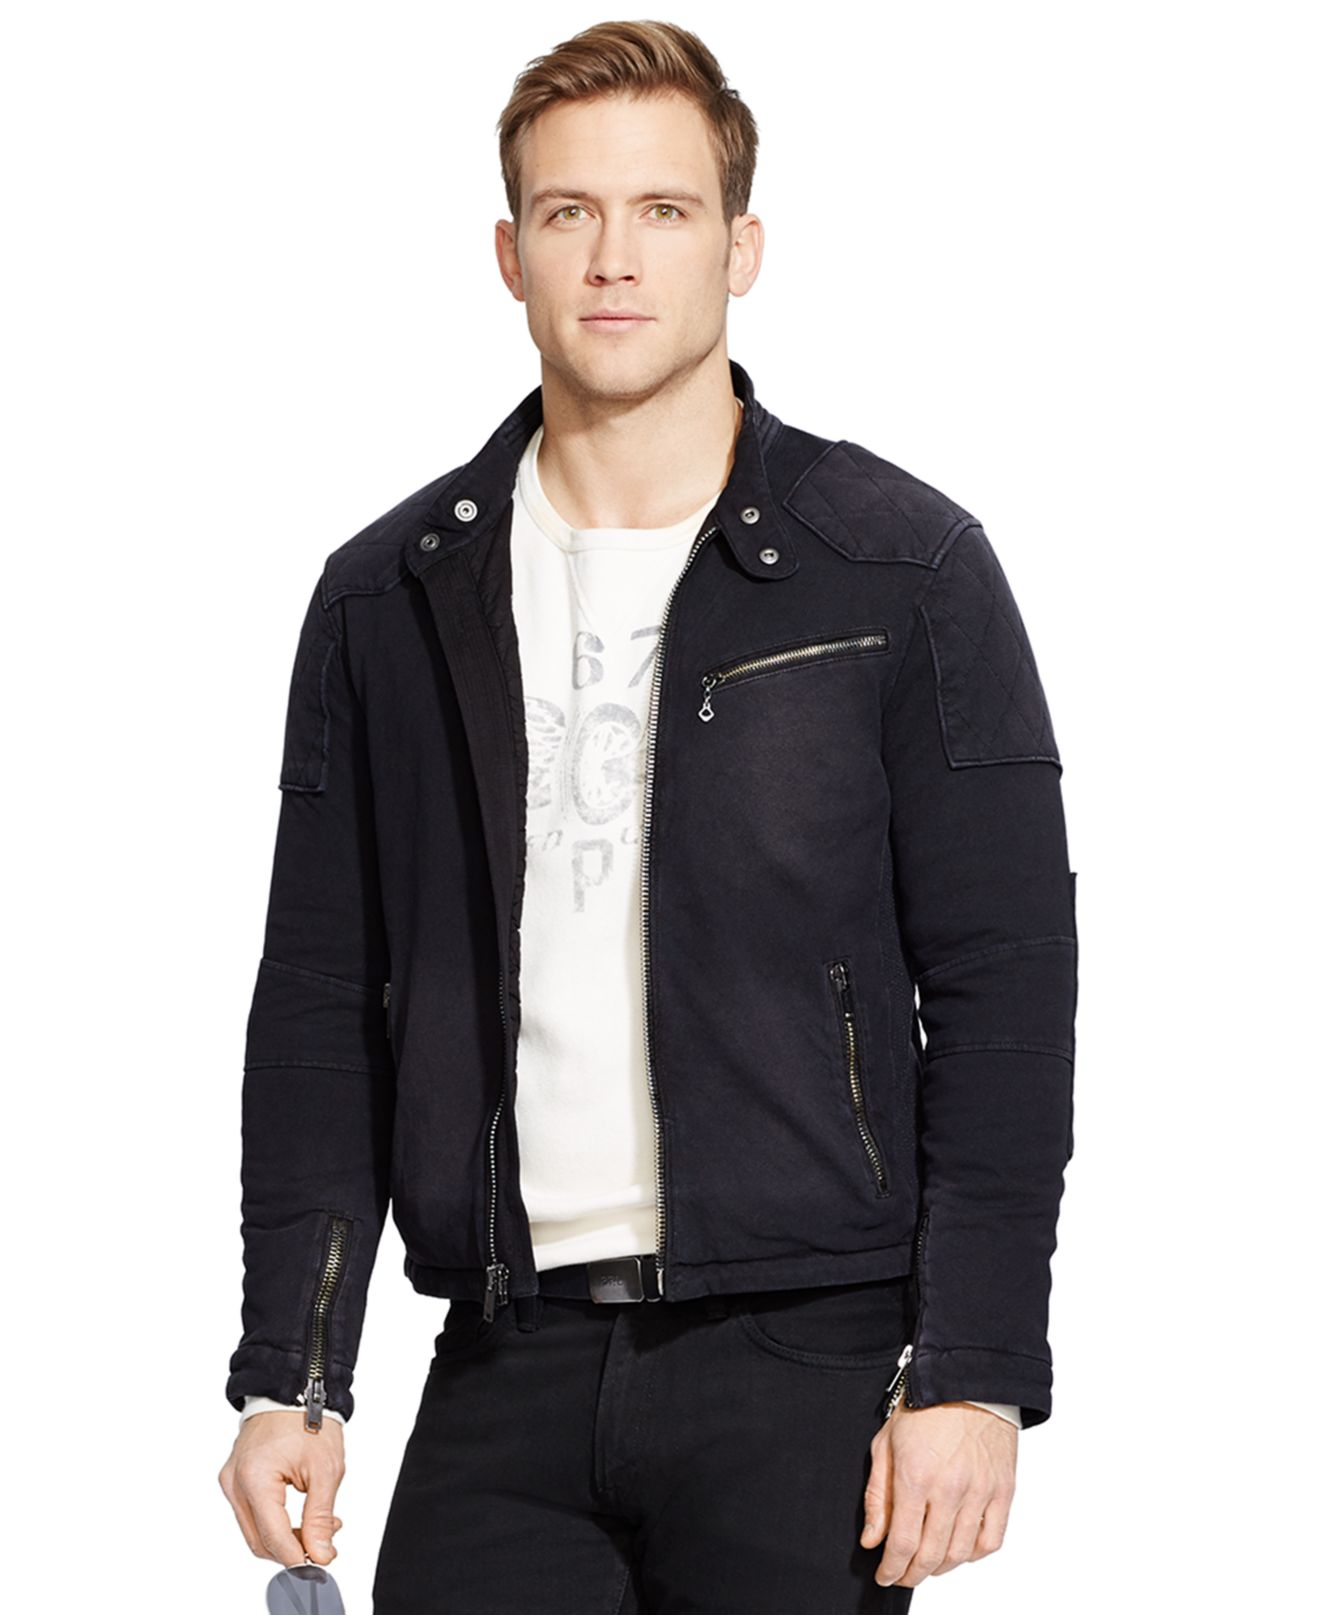 lyst polo ralph lauren knit moto jacket in black for men. Black Bedroom Furniture Sets. Home Design Ideas